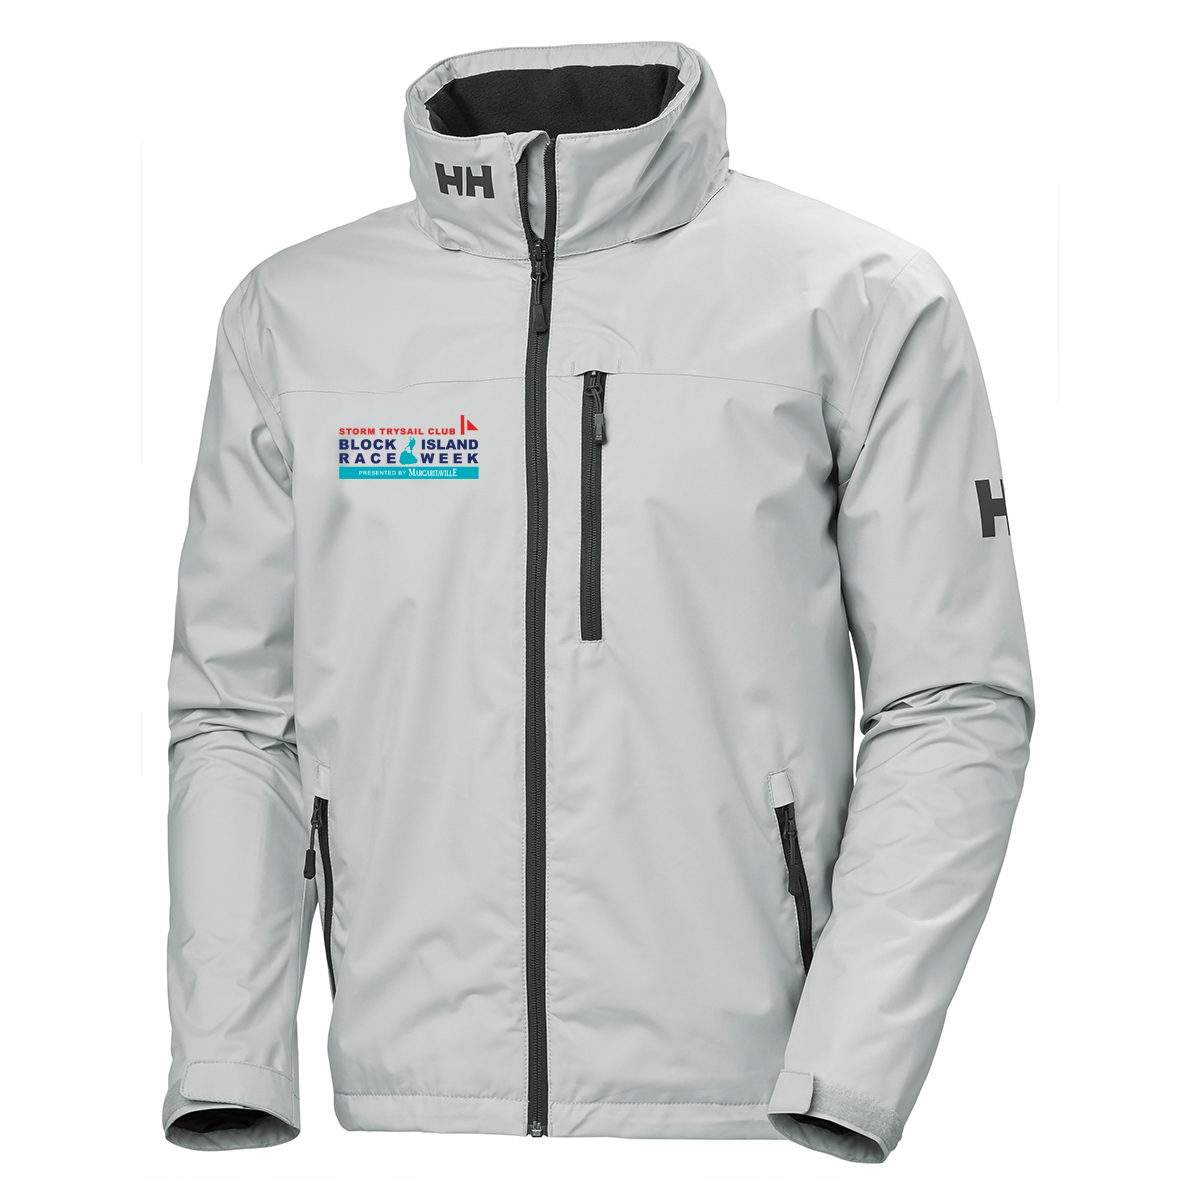 Block Island Race Week 21 - M's Crew Hooded Jacket